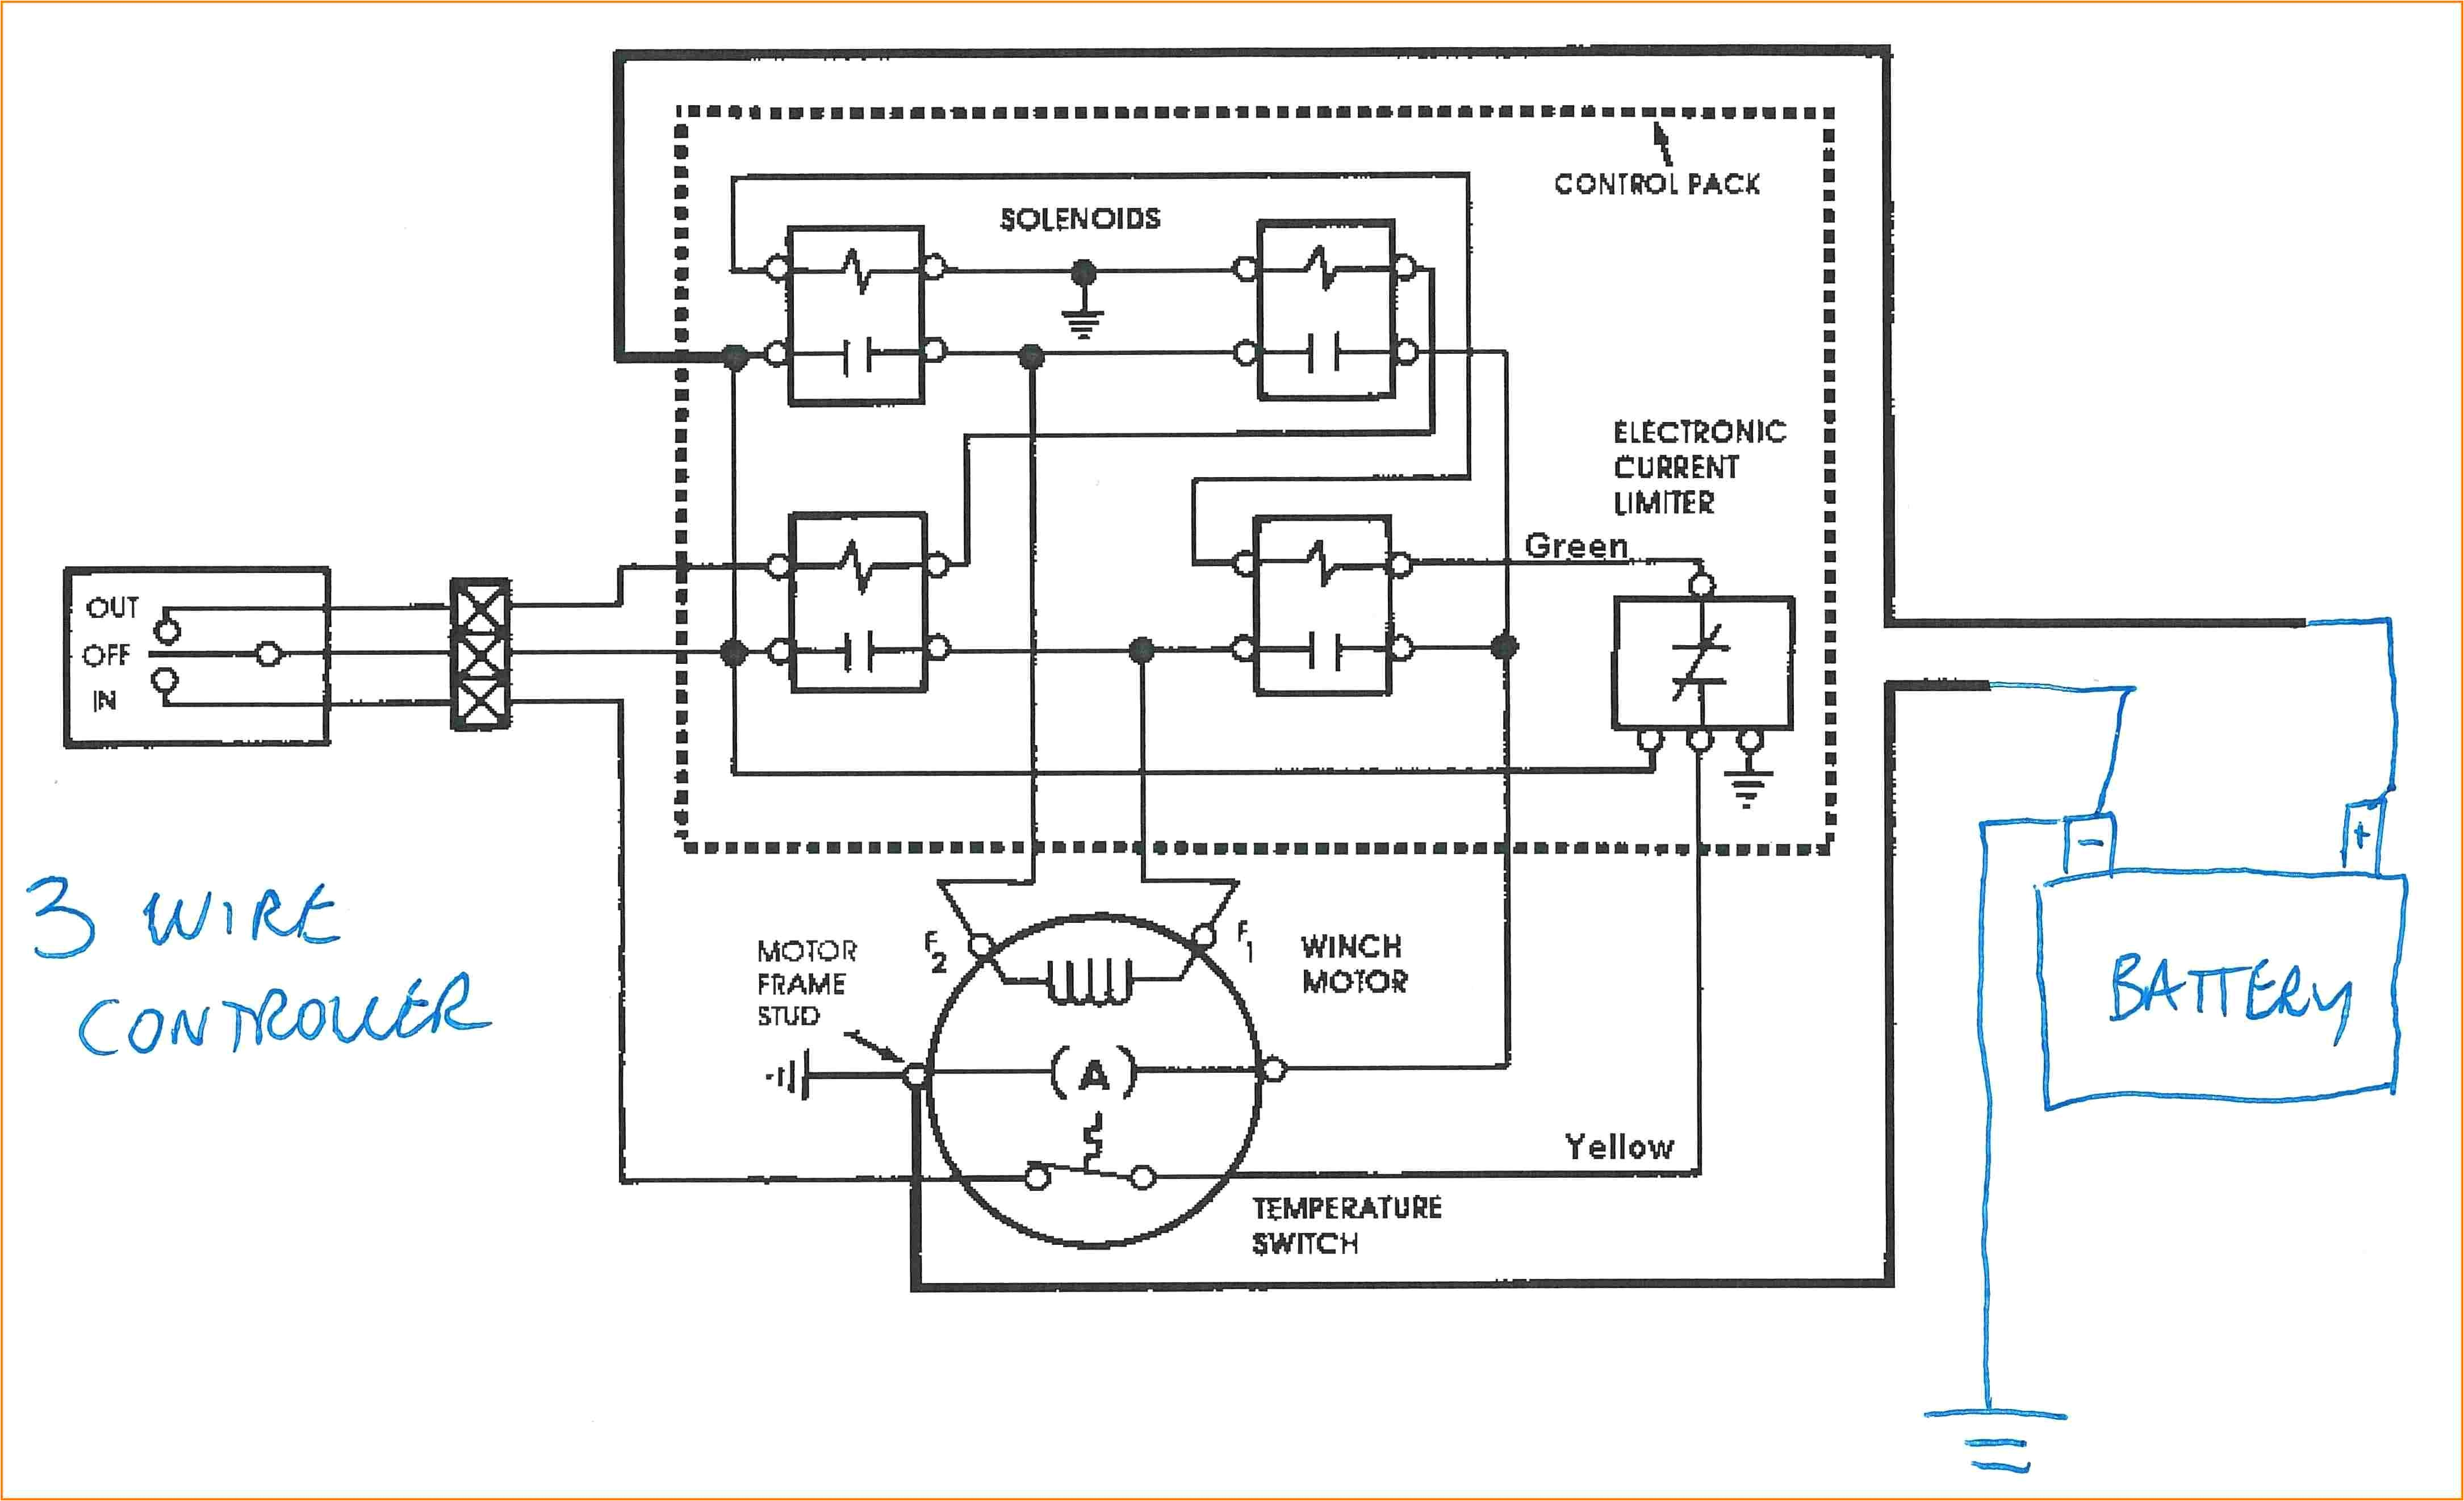 Warn Winch solenoid Wiring Diagram Warn Winch Xd9000i Wiring Diagram Wiring Diagram Database